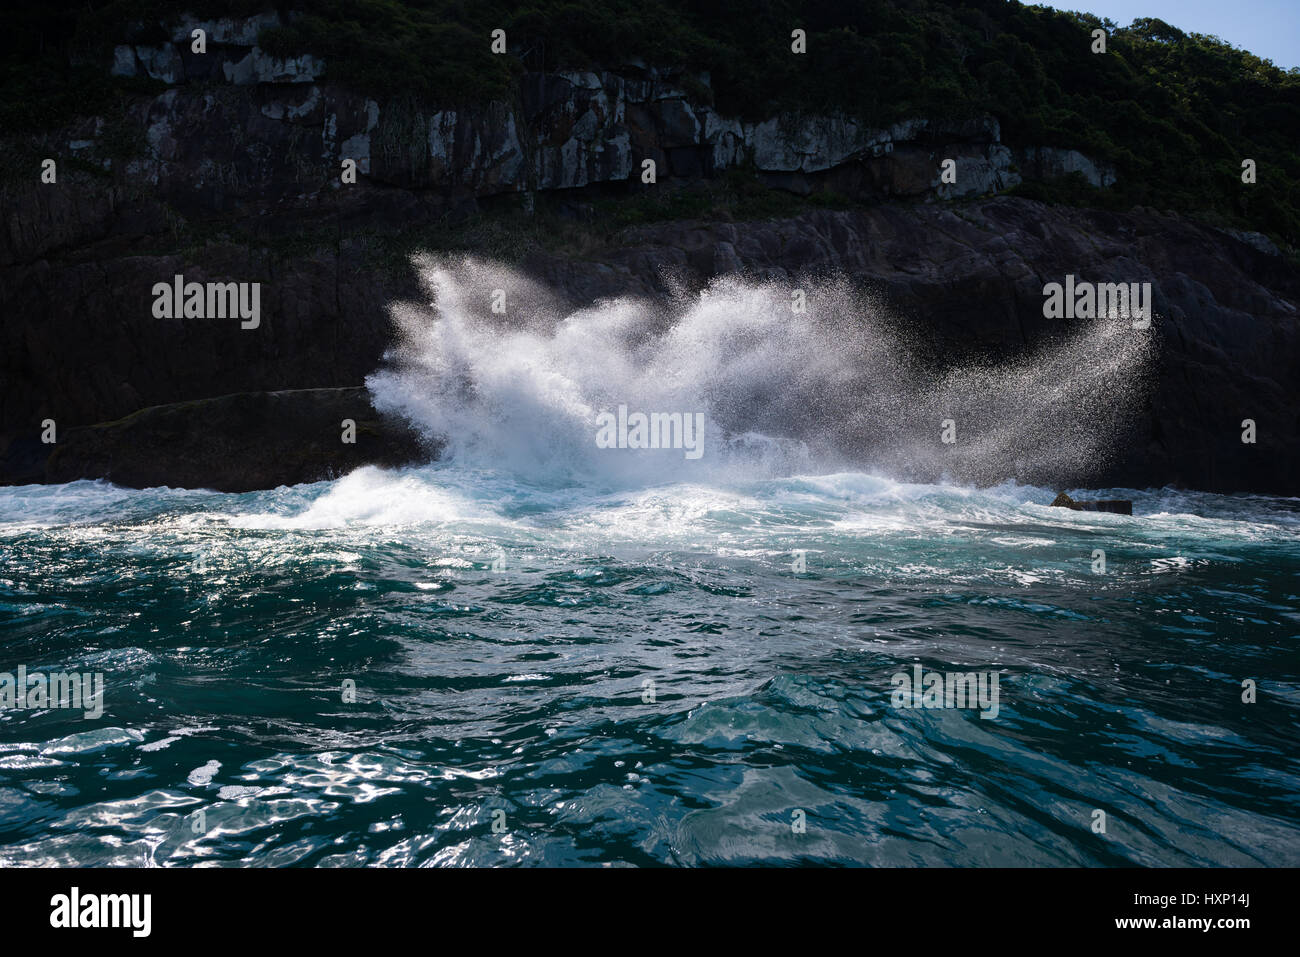 A wave crashes on the rocky cliffs of Ilhabela Stock Photo